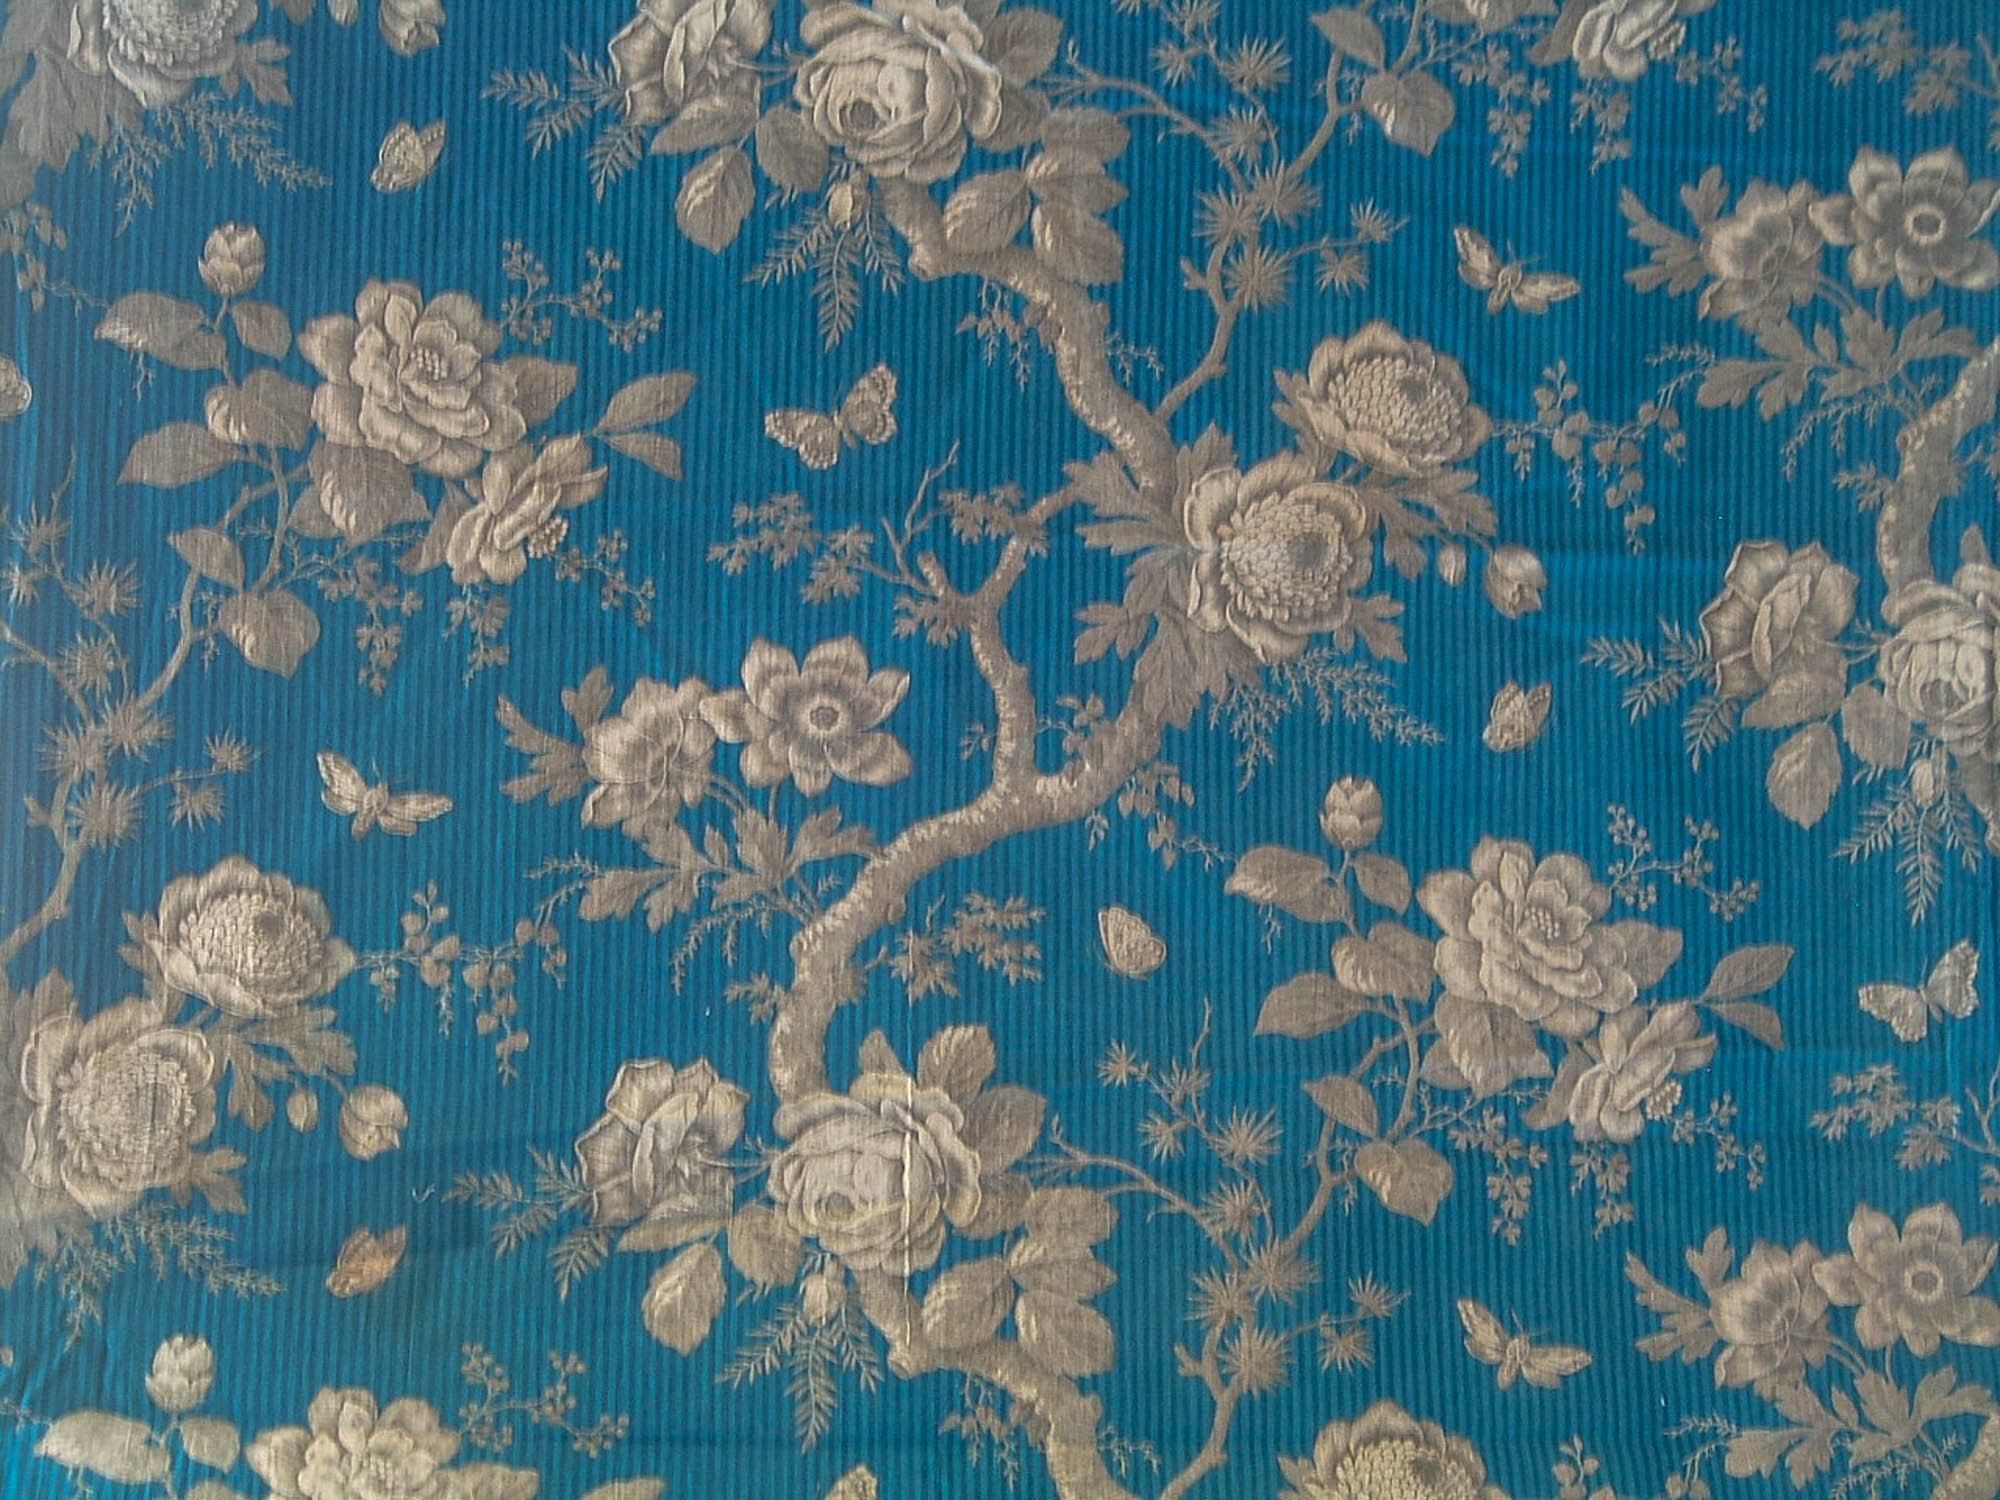 Antique French Fabric Textile 19th C Arboreal In Blue